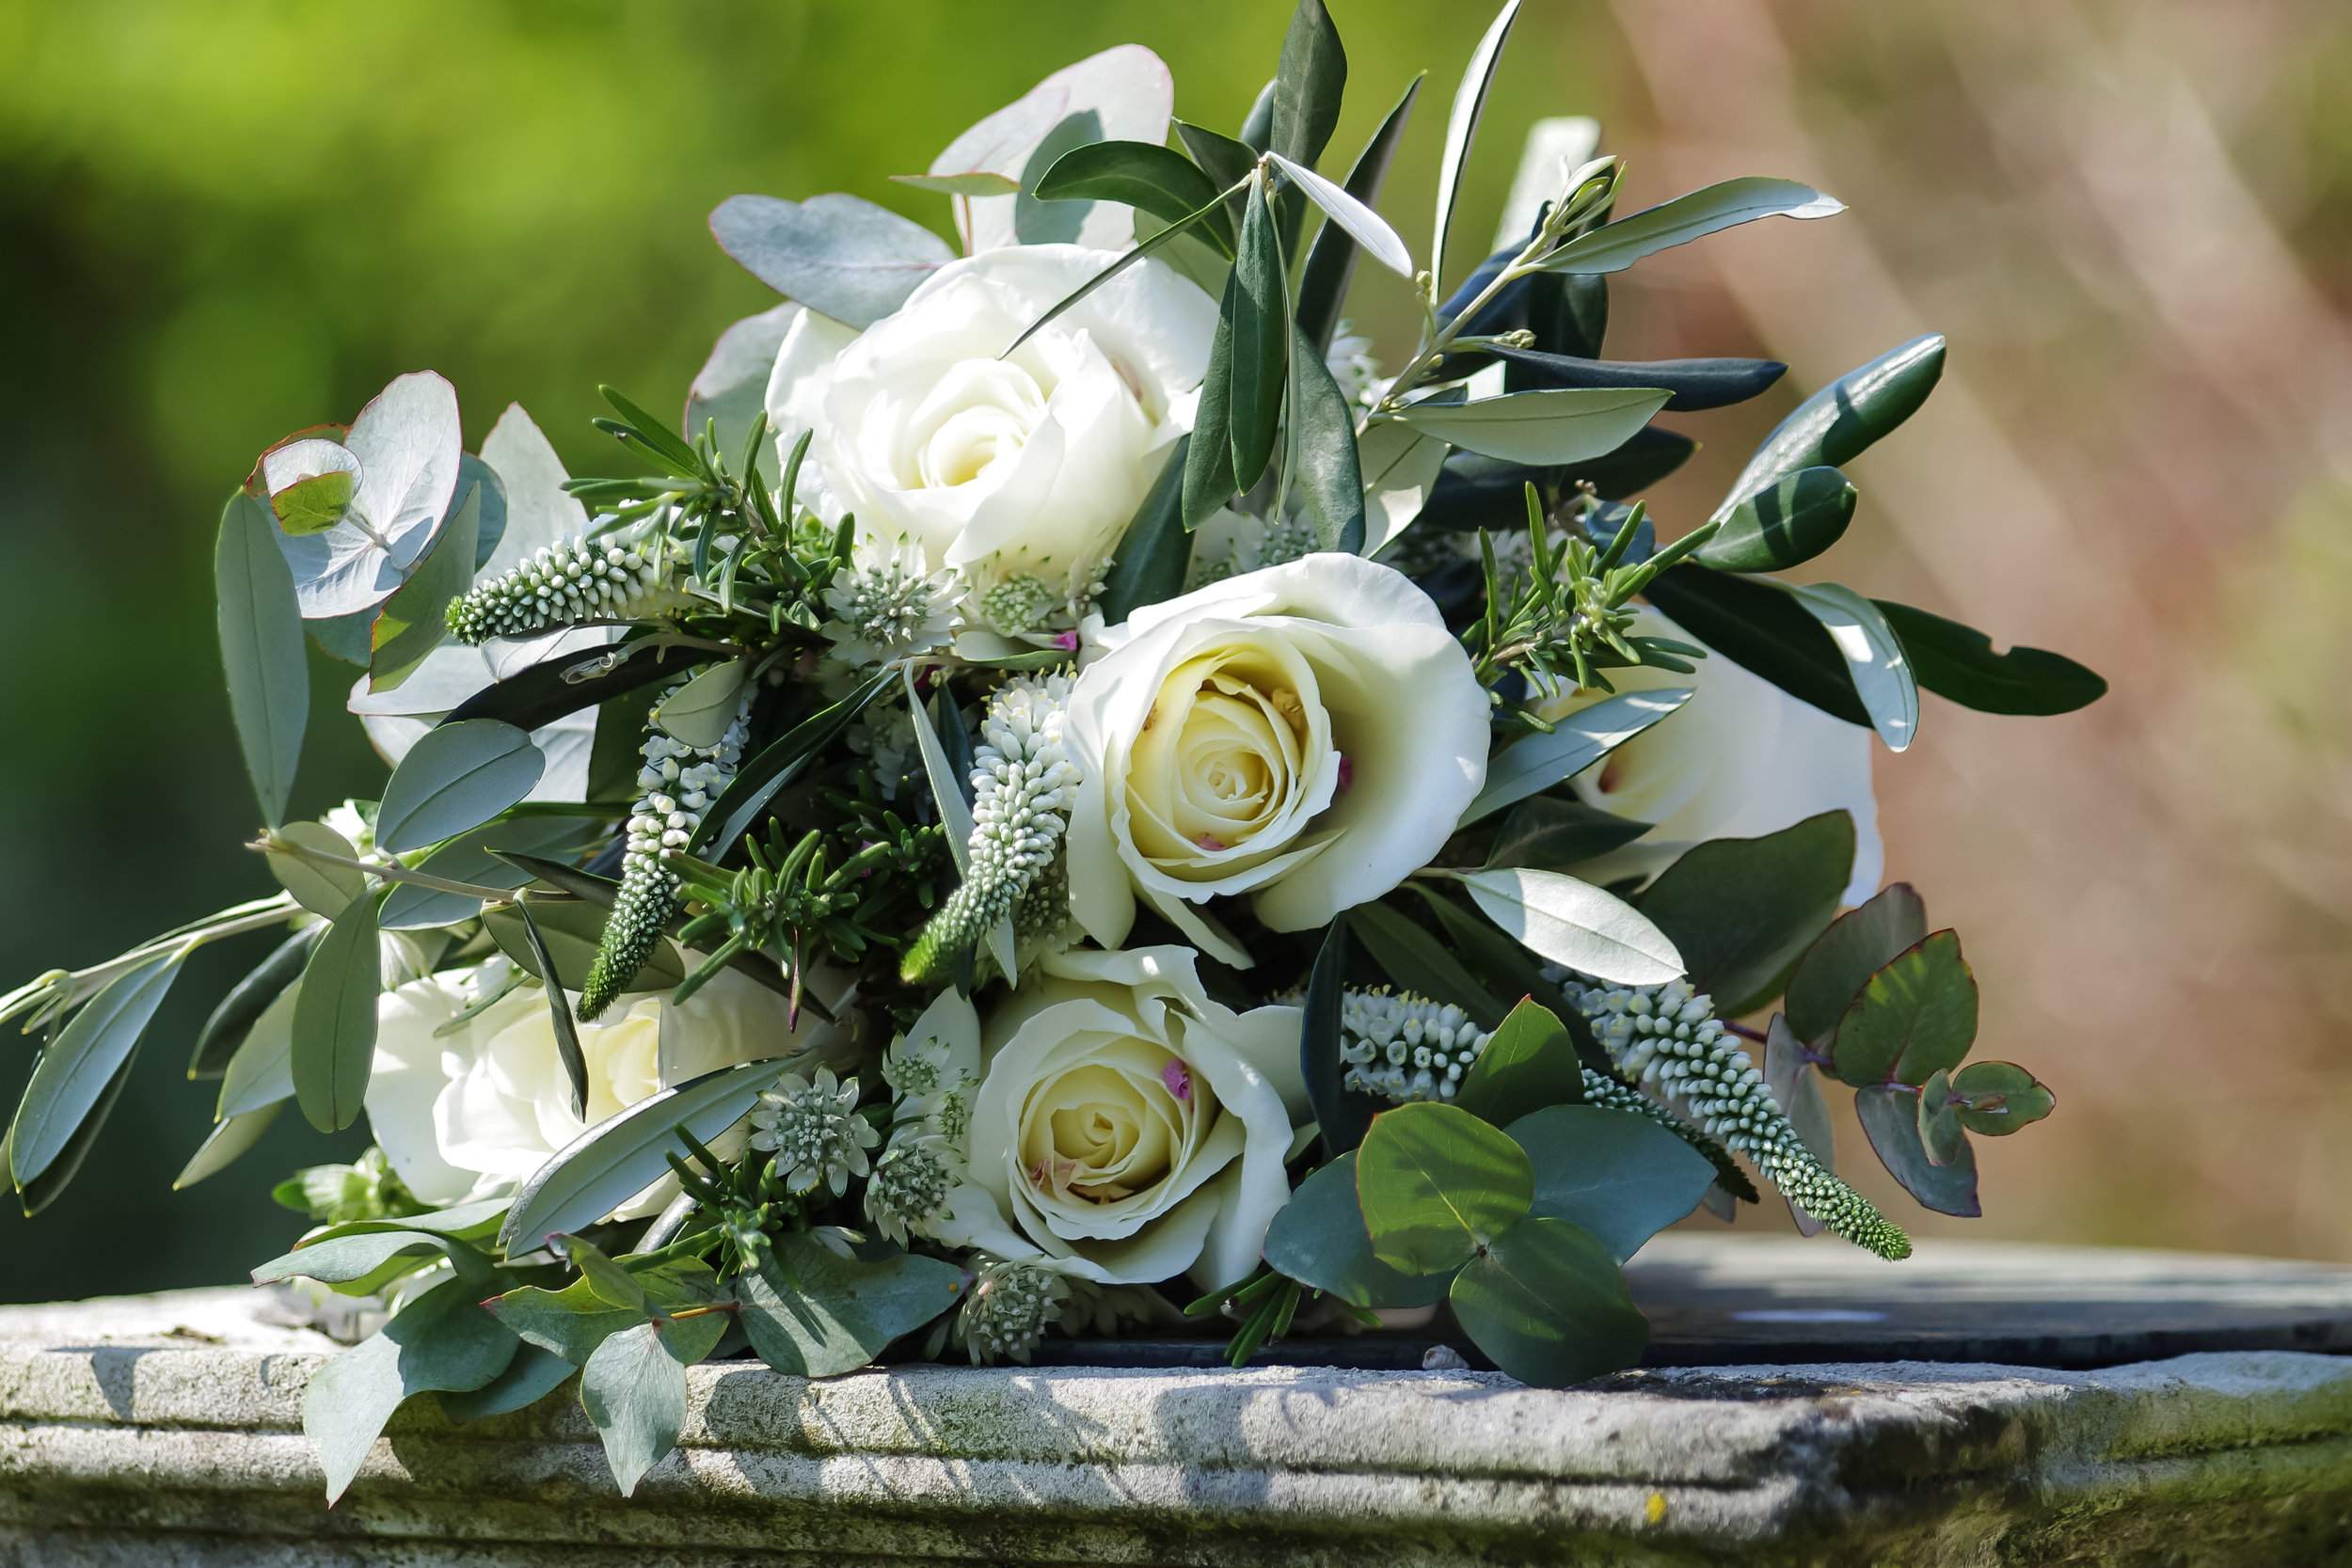 Sian+and+Vittorio+bouquet+close+up.jpg